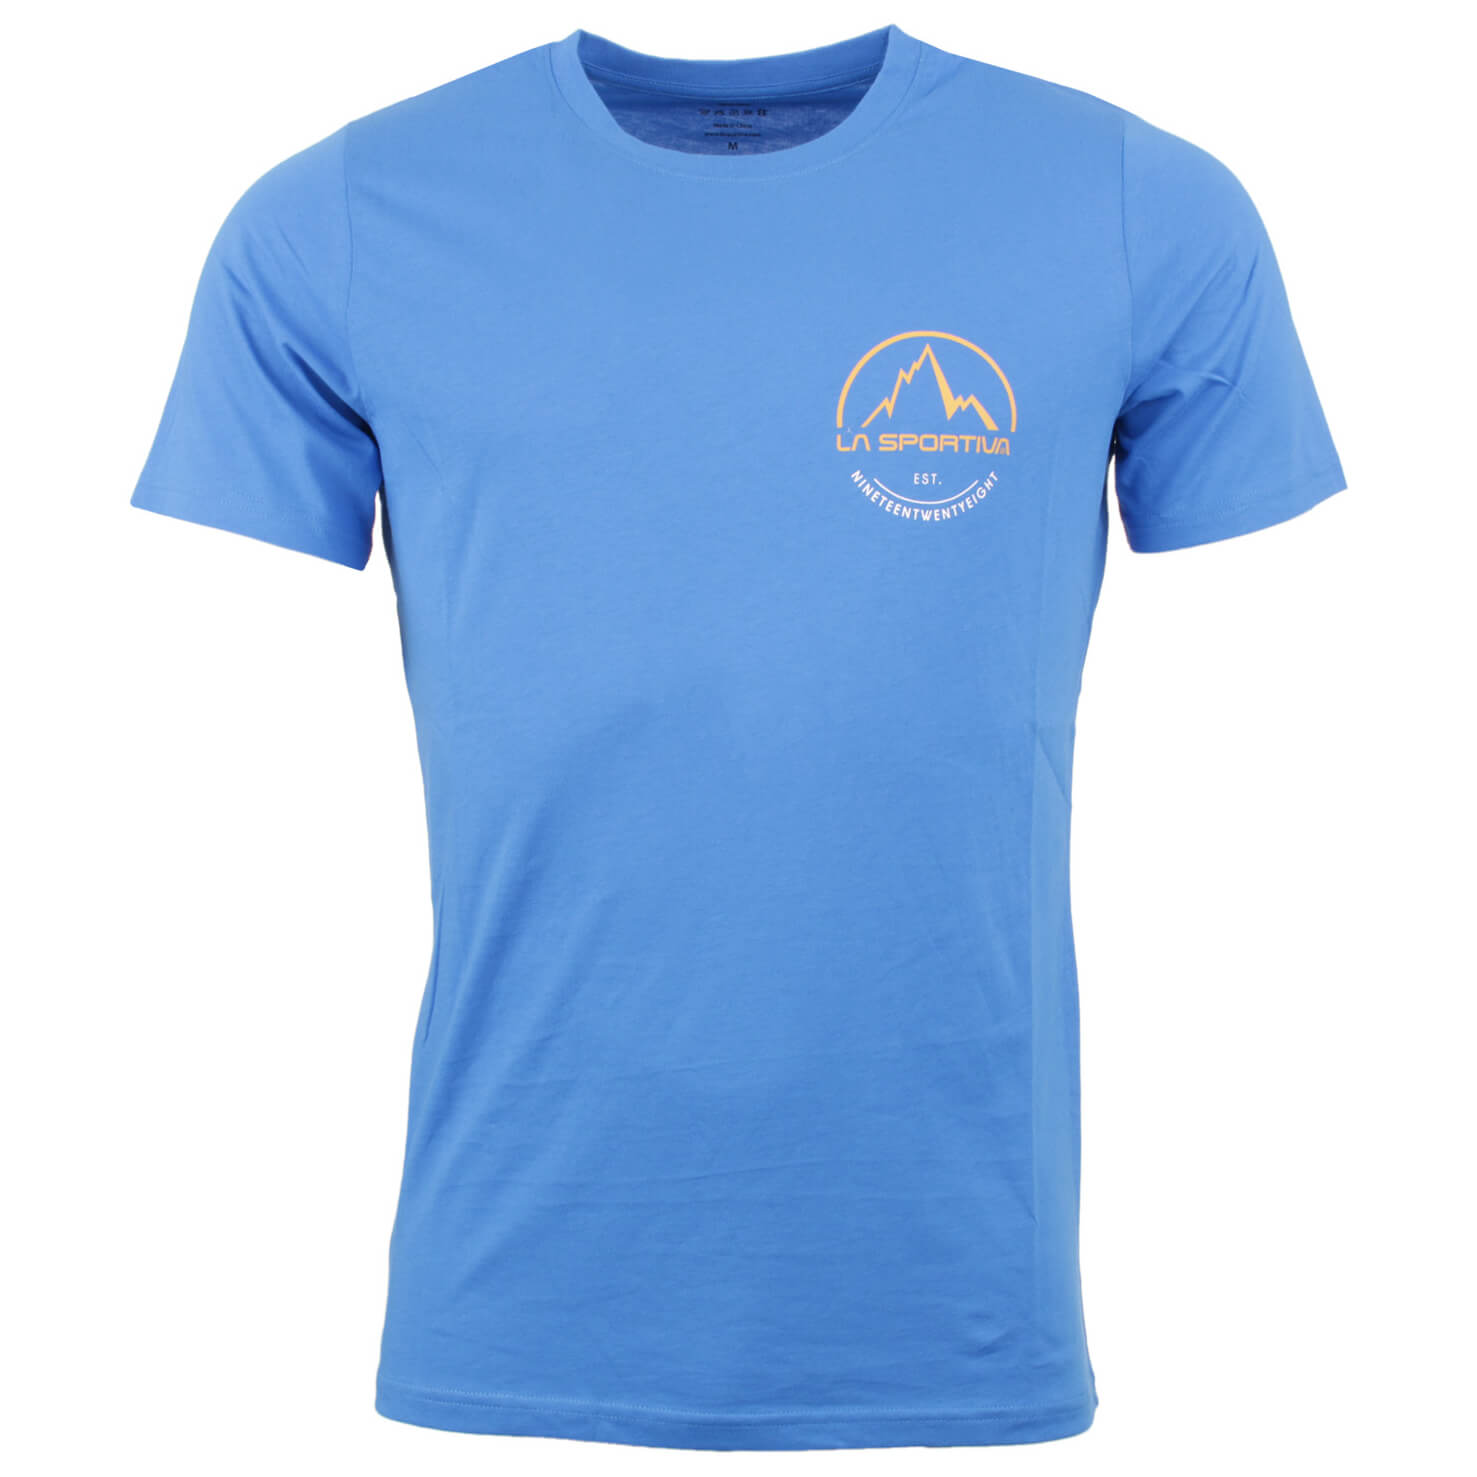 La sportiva small logo tee t shirt men 39 s buy online for Shirts with small logos